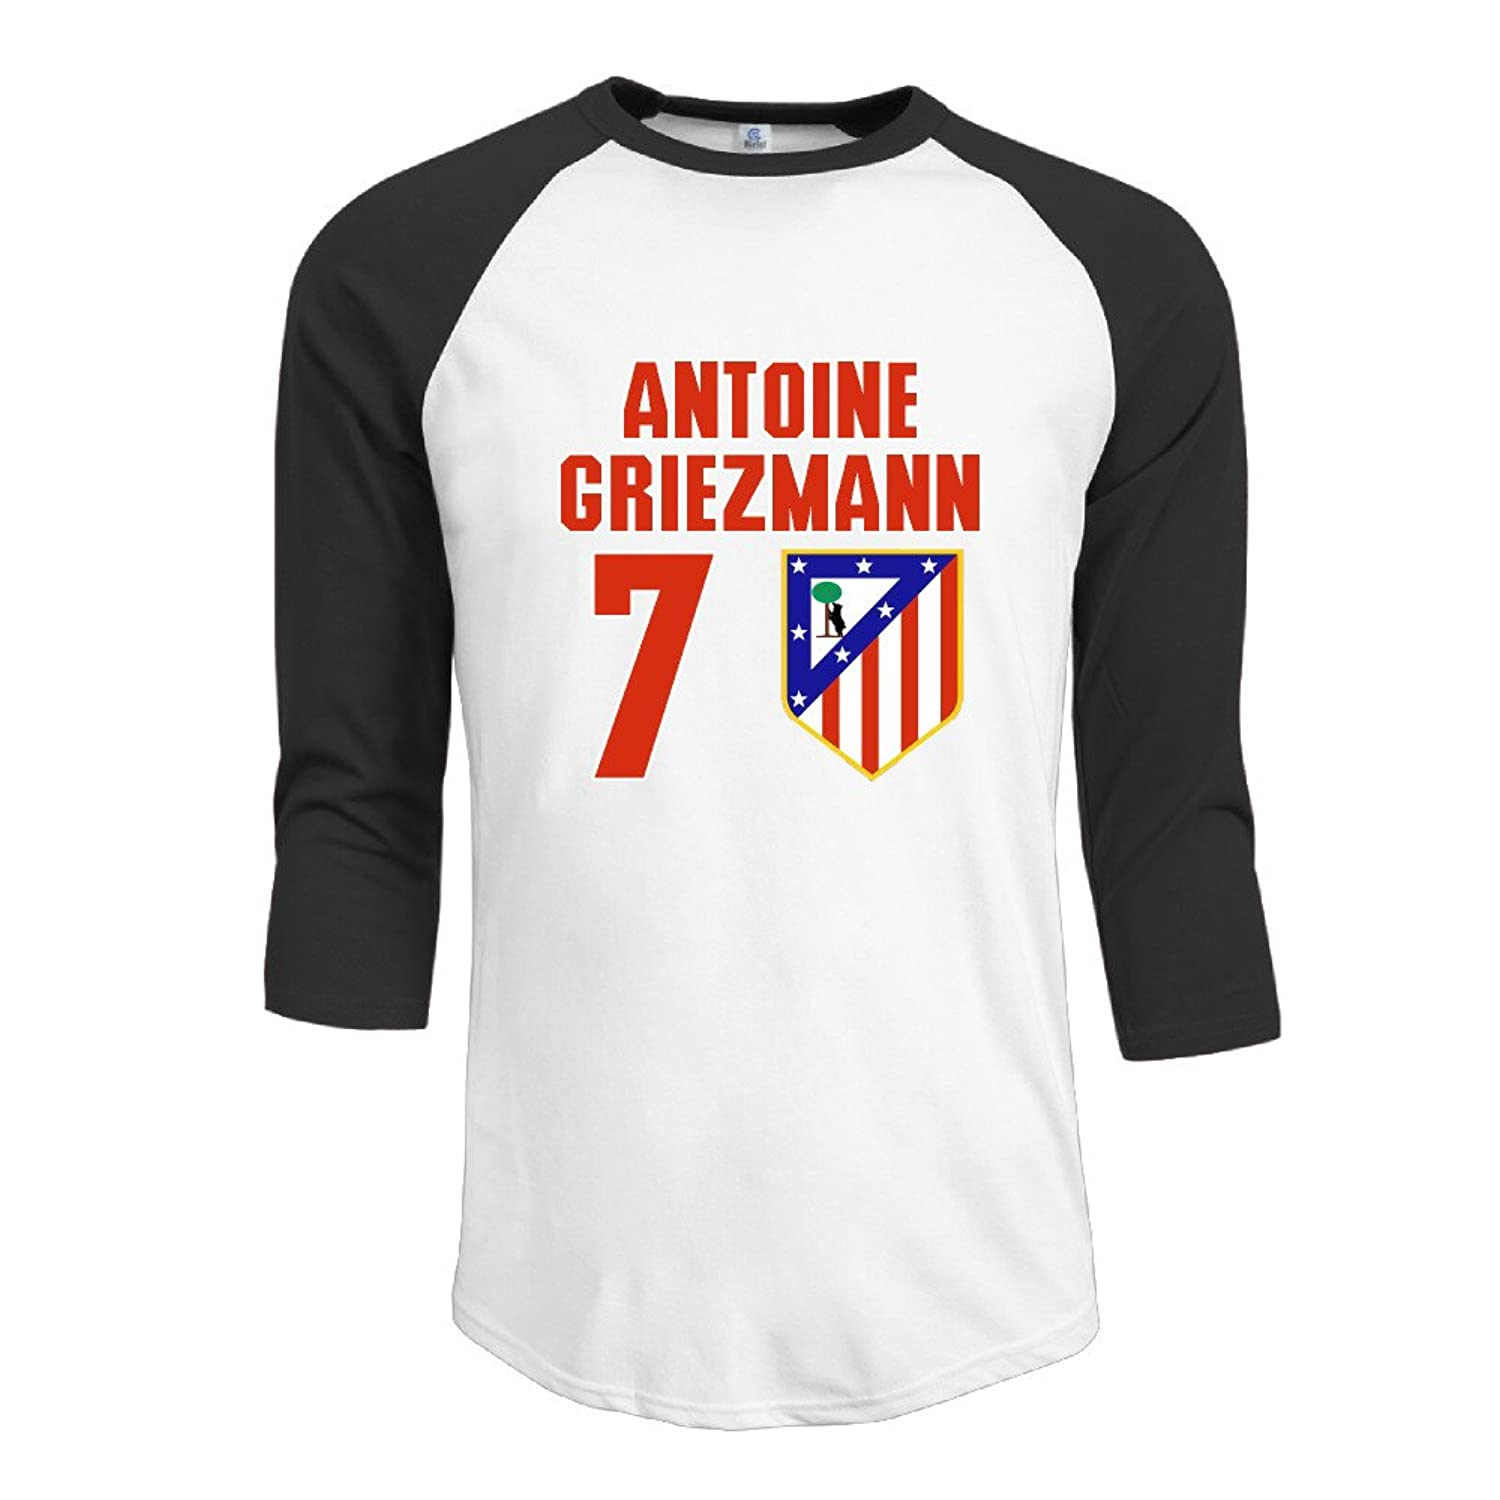 Bro-Custom Antoine #7 Griezmann Men Round Collar Raglan T-shirt Black